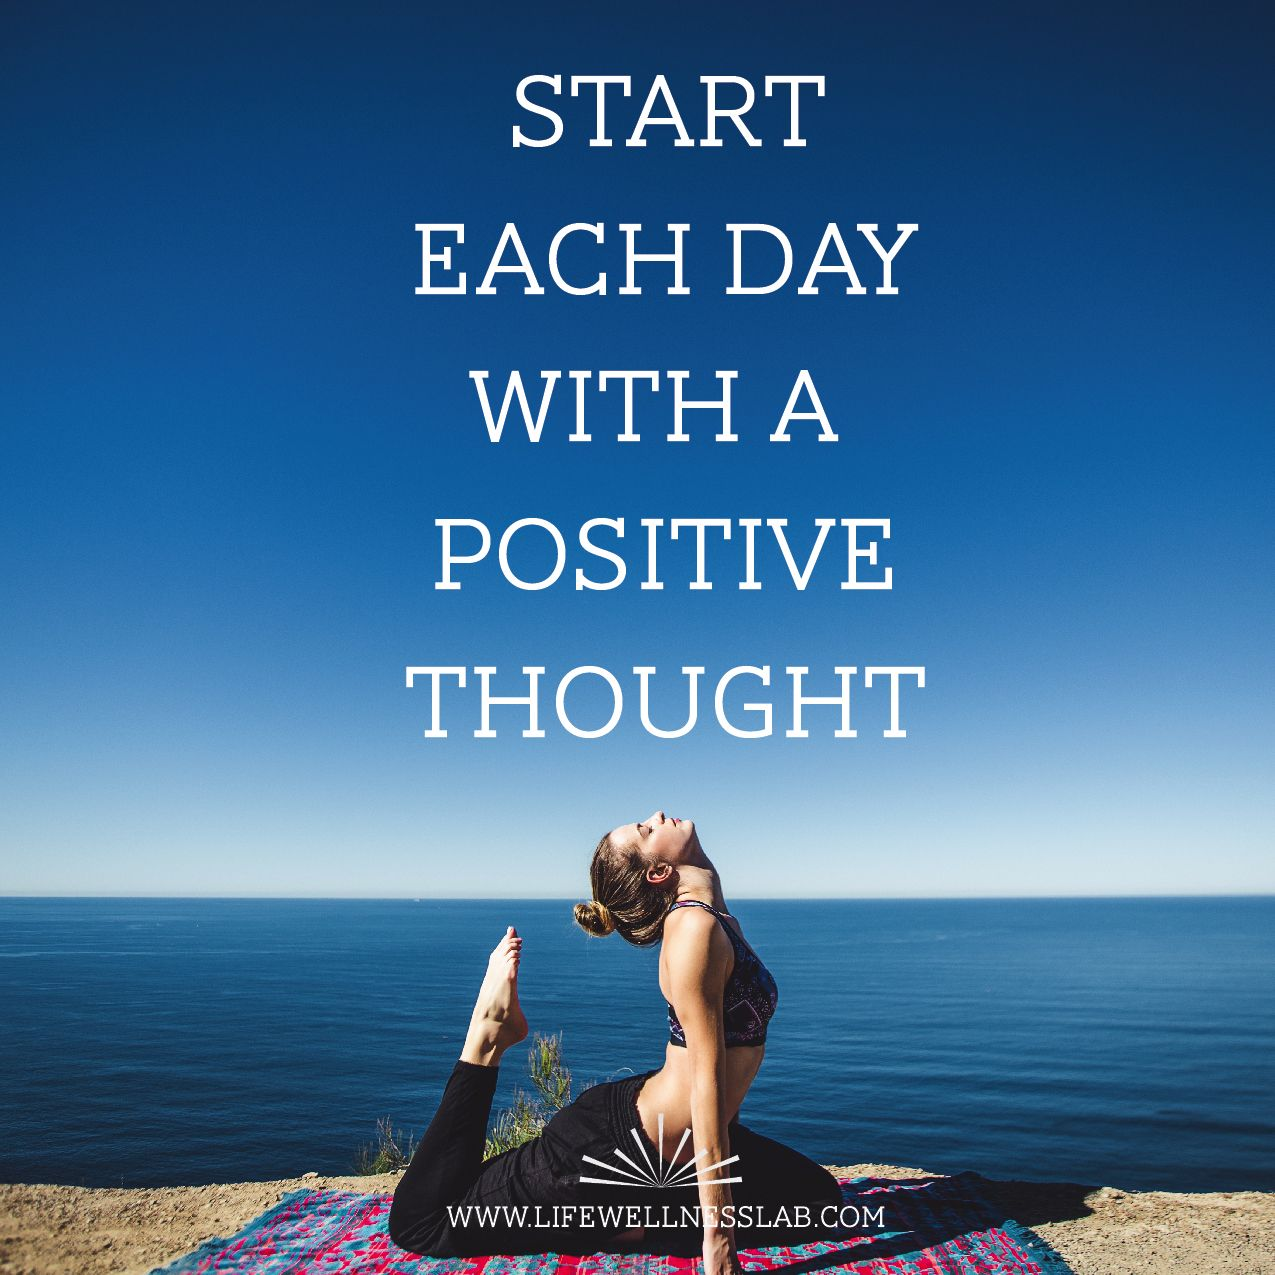 30 Daily Inspirational Quotes To Start Your Day: Start Each Day In A Positive Way! Positive Thought